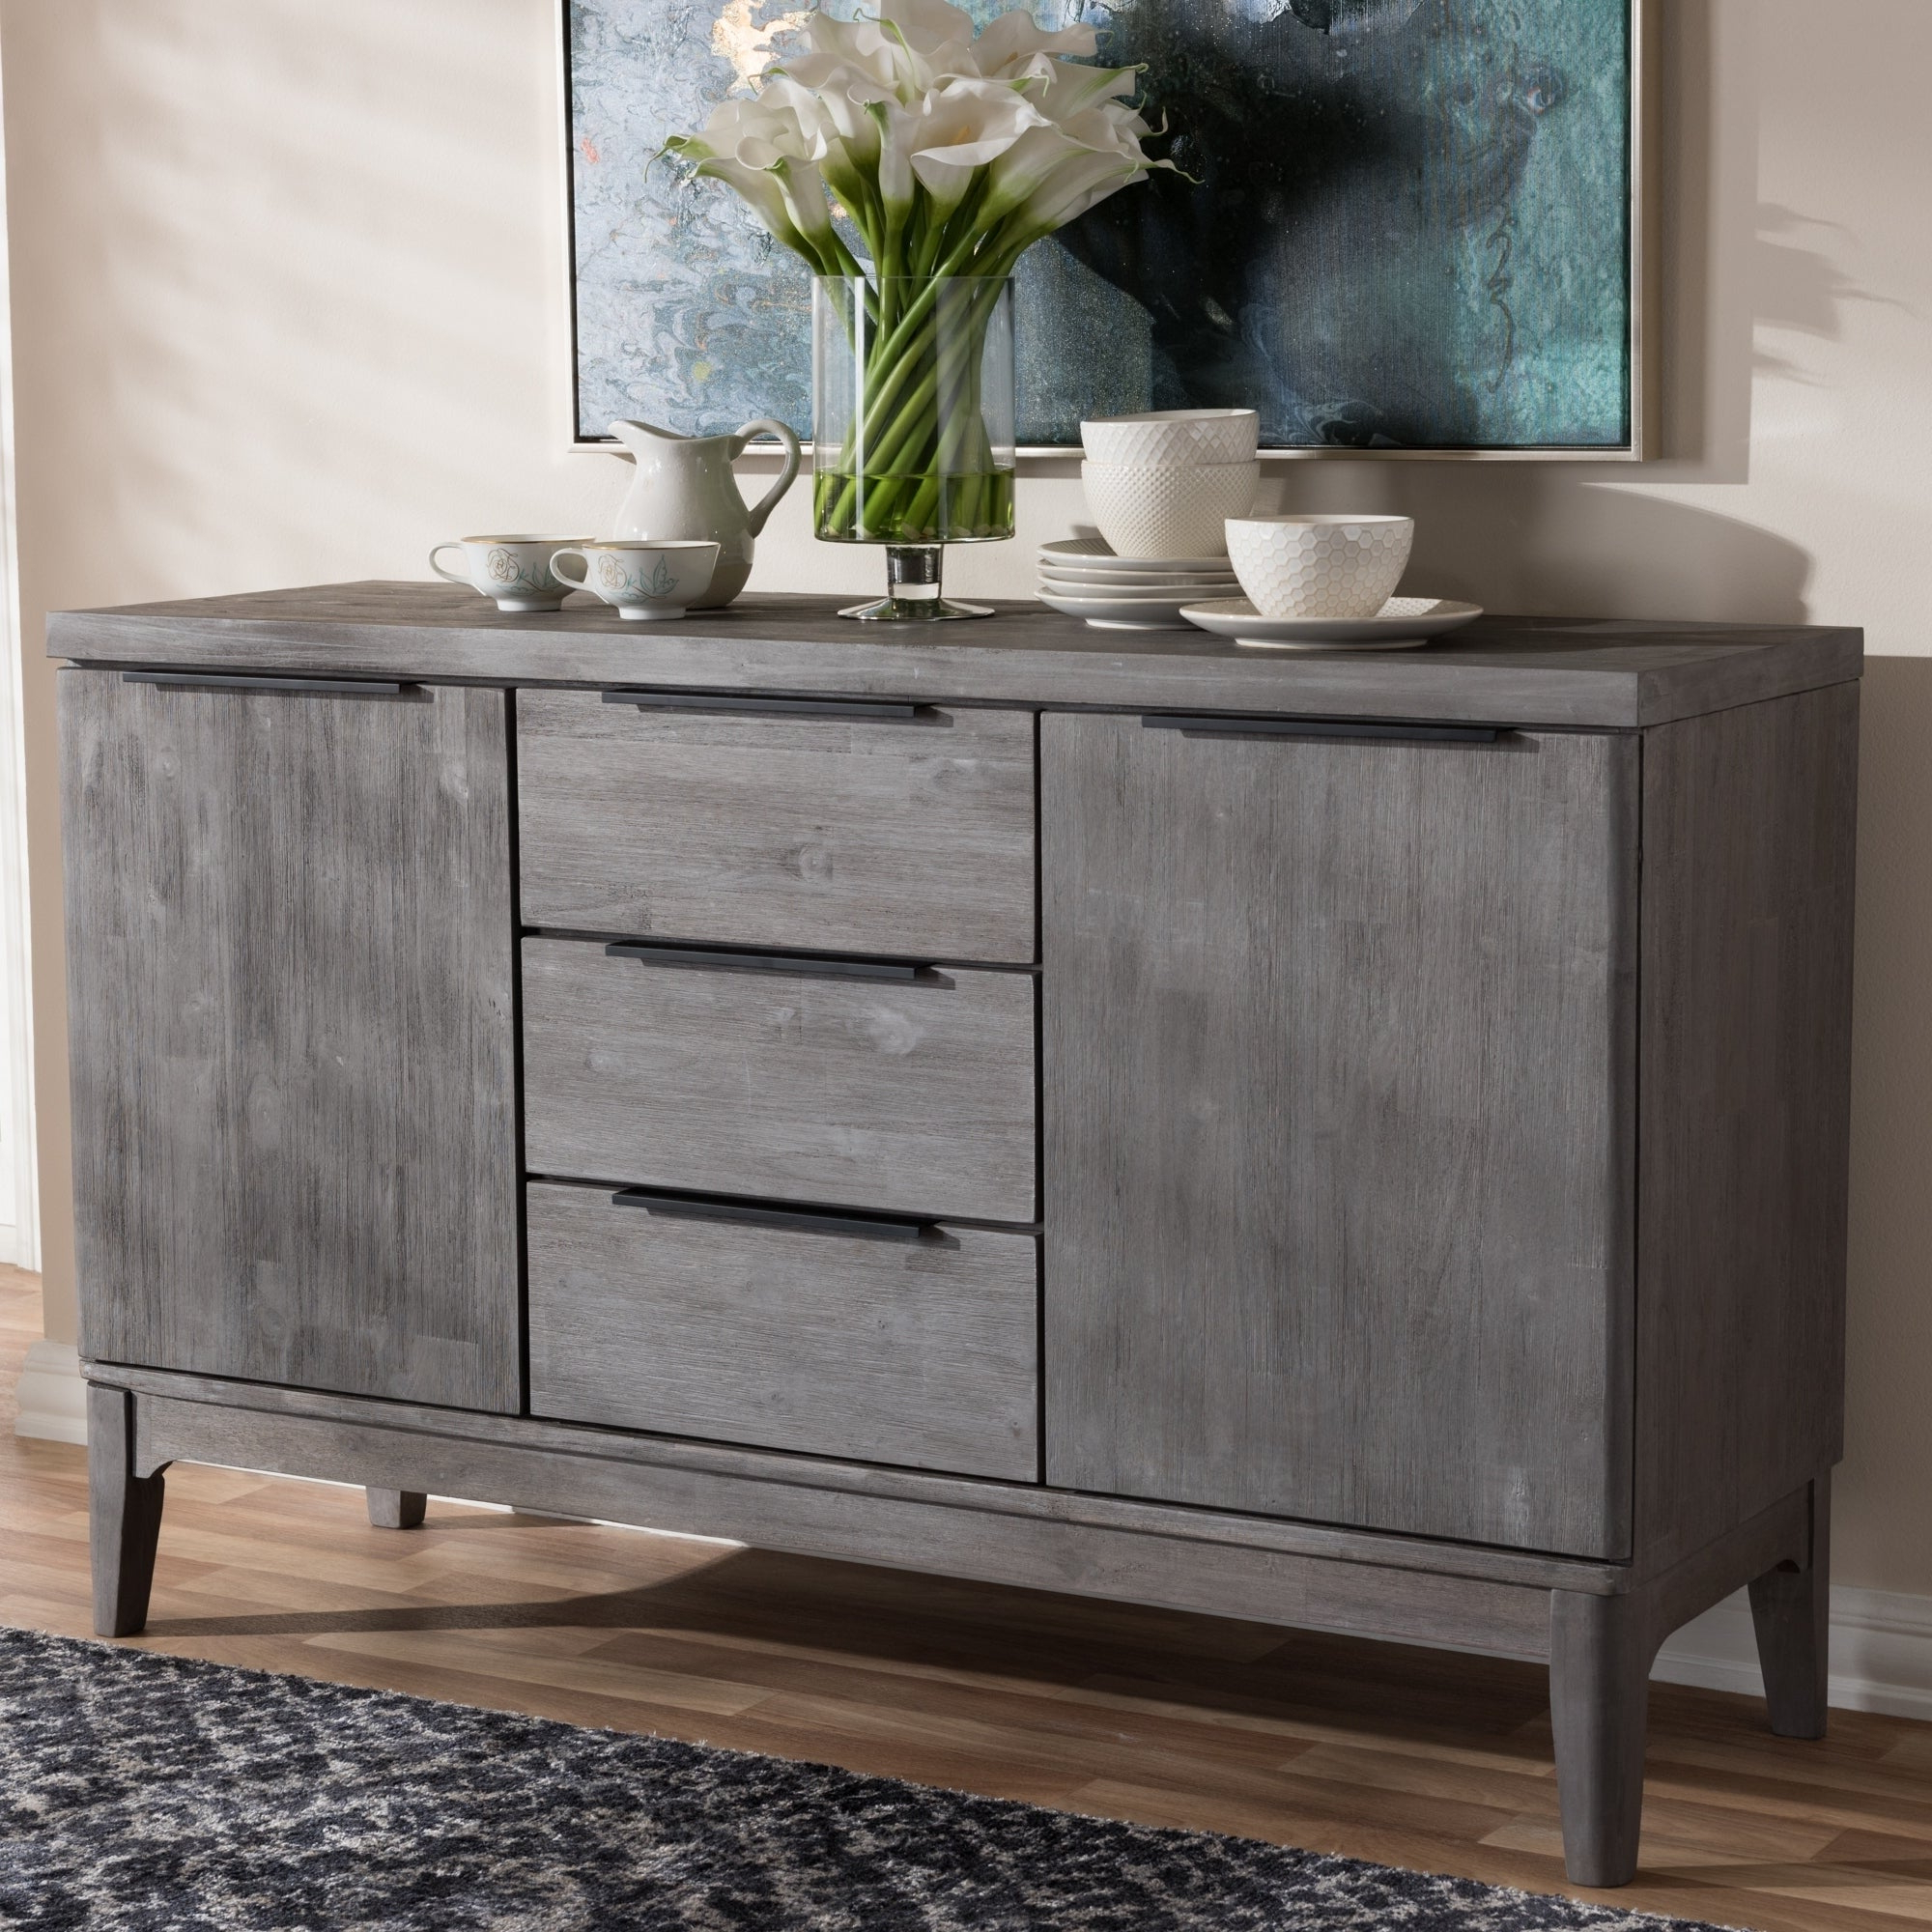 Shop Rustic Platinum Grey 3 Drawer Sideboard Buffet For 3 Drawer Titanium Buffets (View 19 of 20)